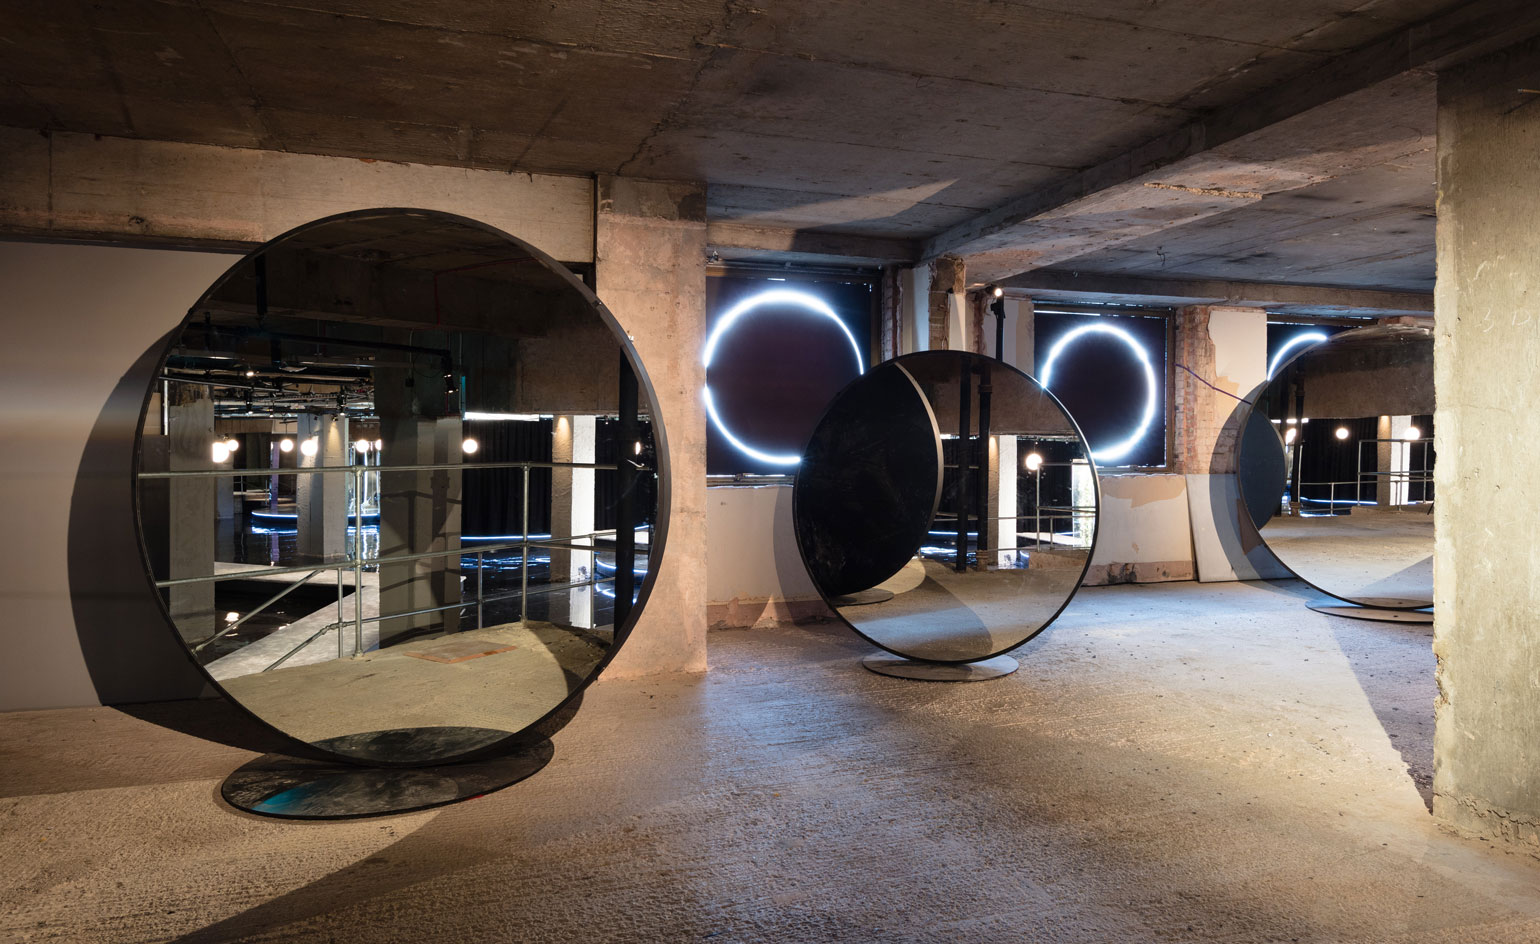 Zagaleta, The Flipside is the multisensory exhibition about luxury_2